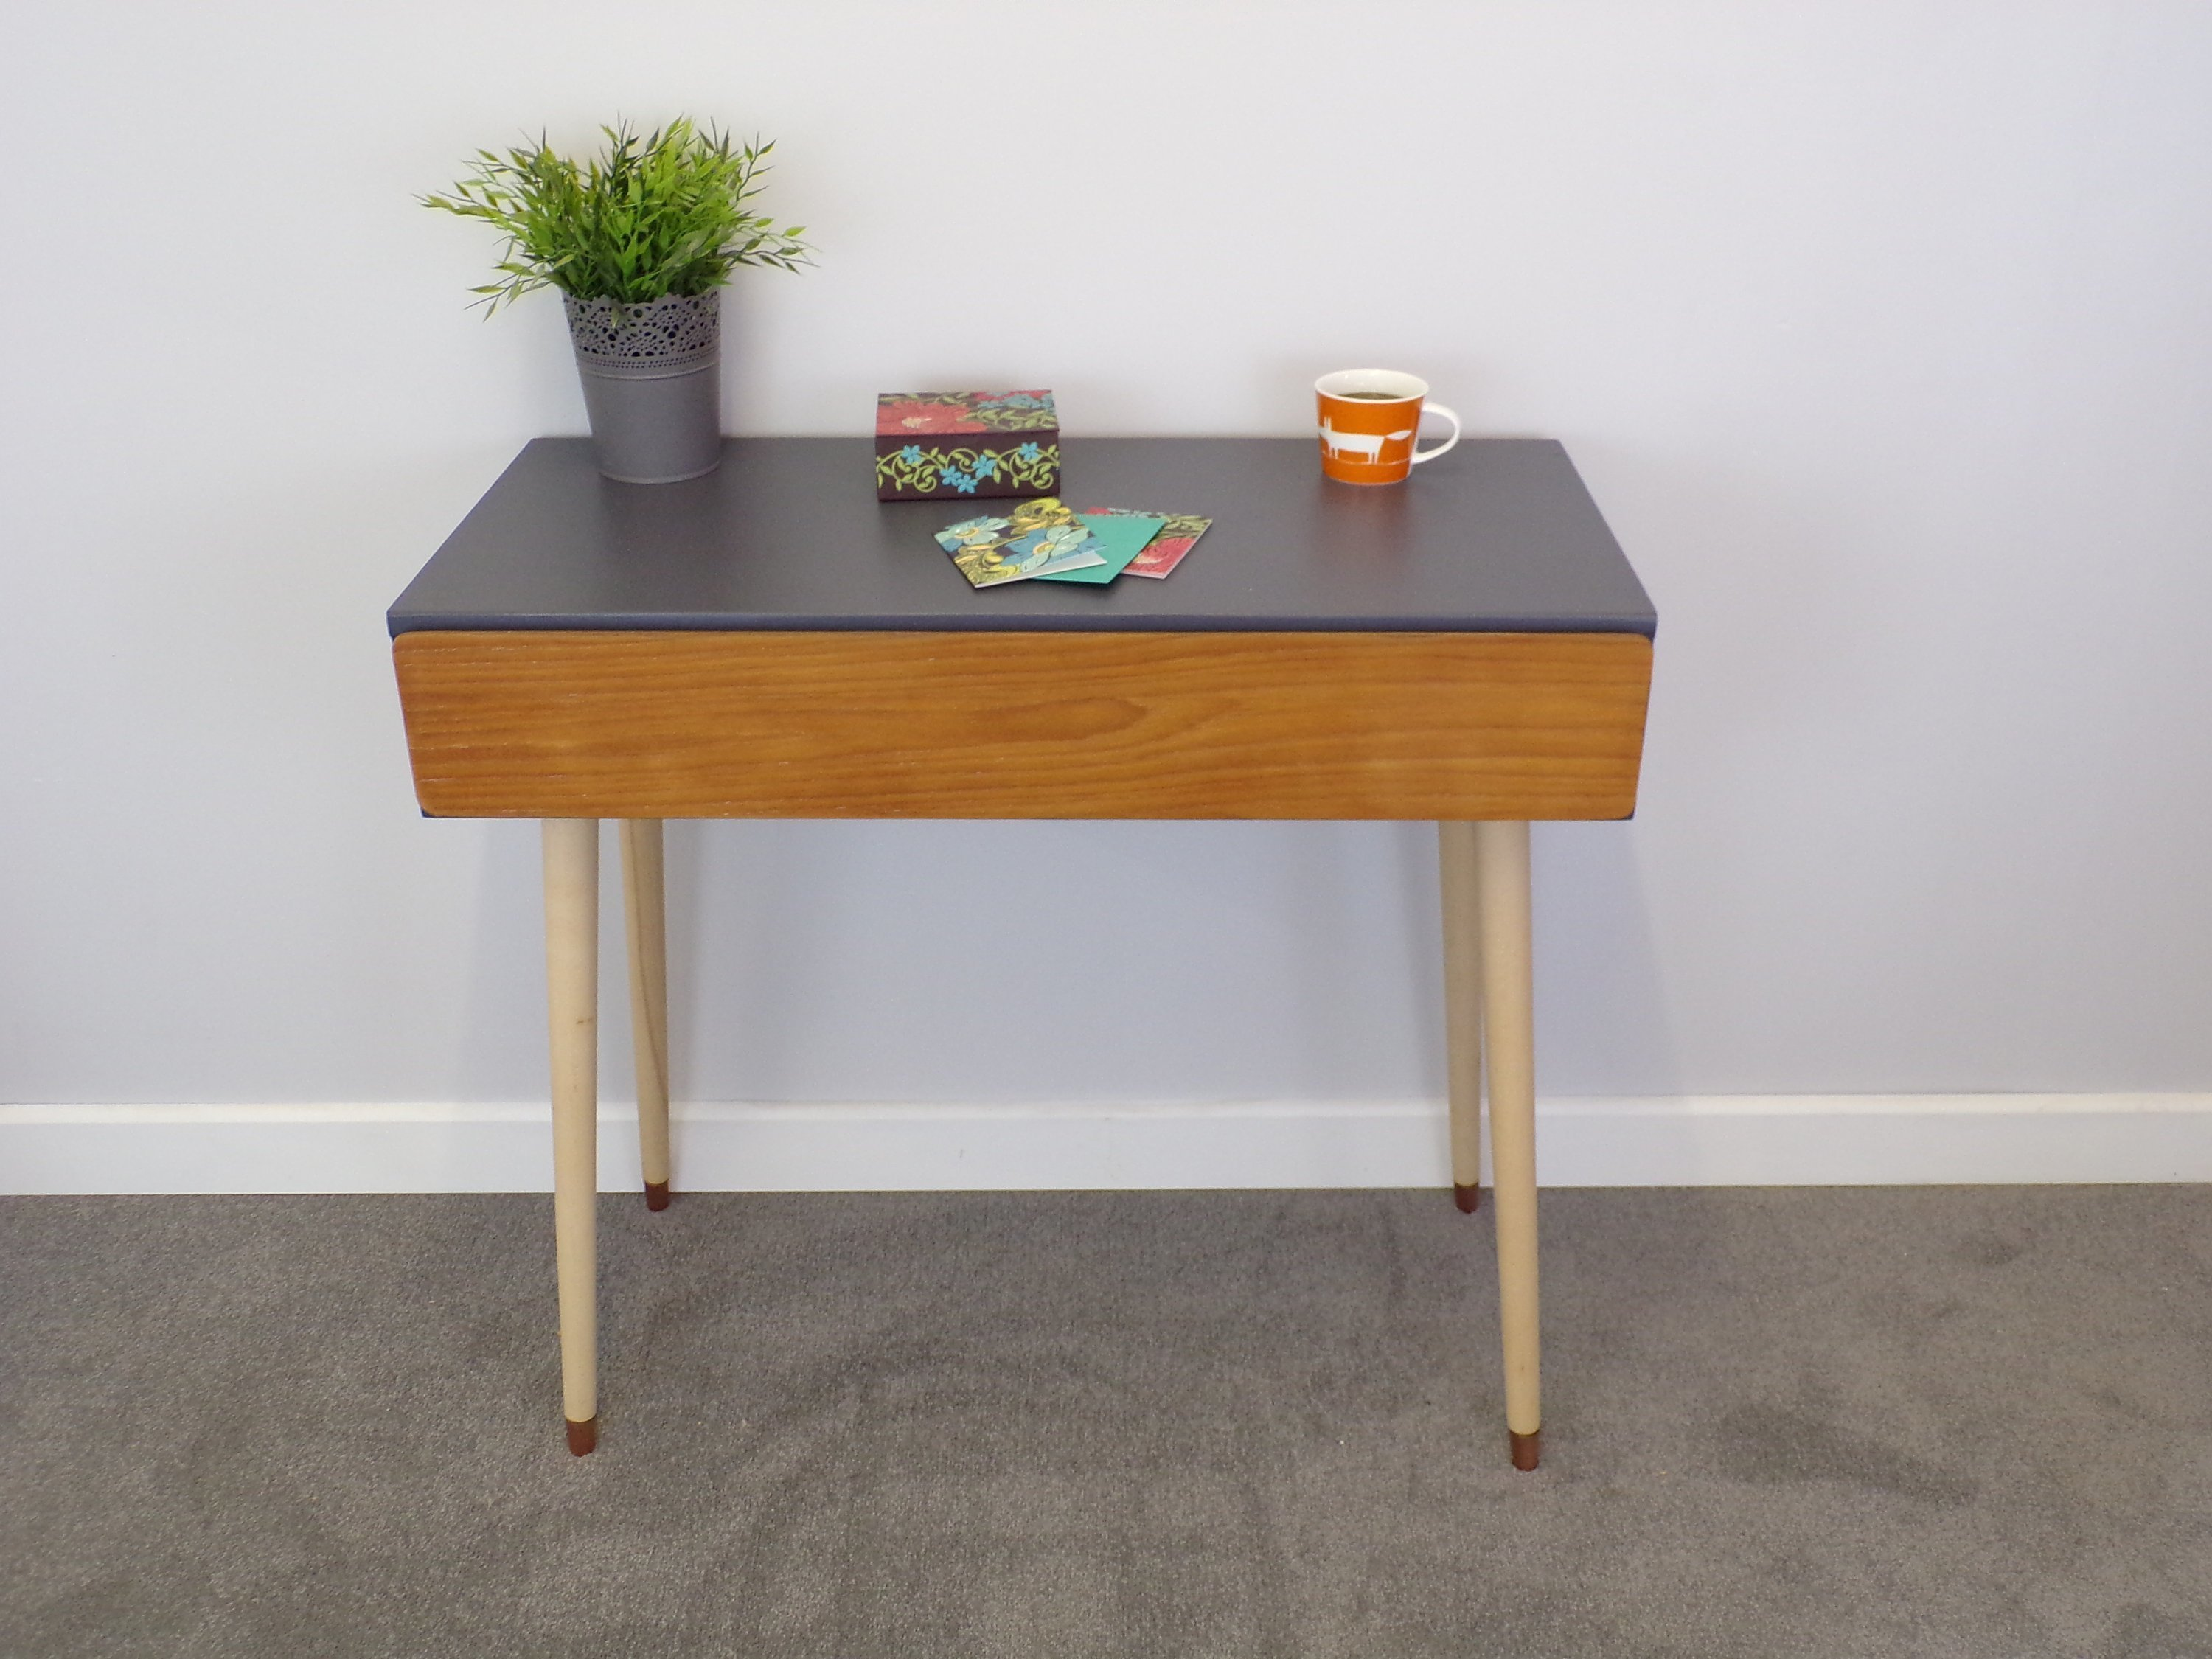 Image of: Mid Century Modern Desk With Drawer In Charcoal Grey With Tapered Legs And Copper Vinterior